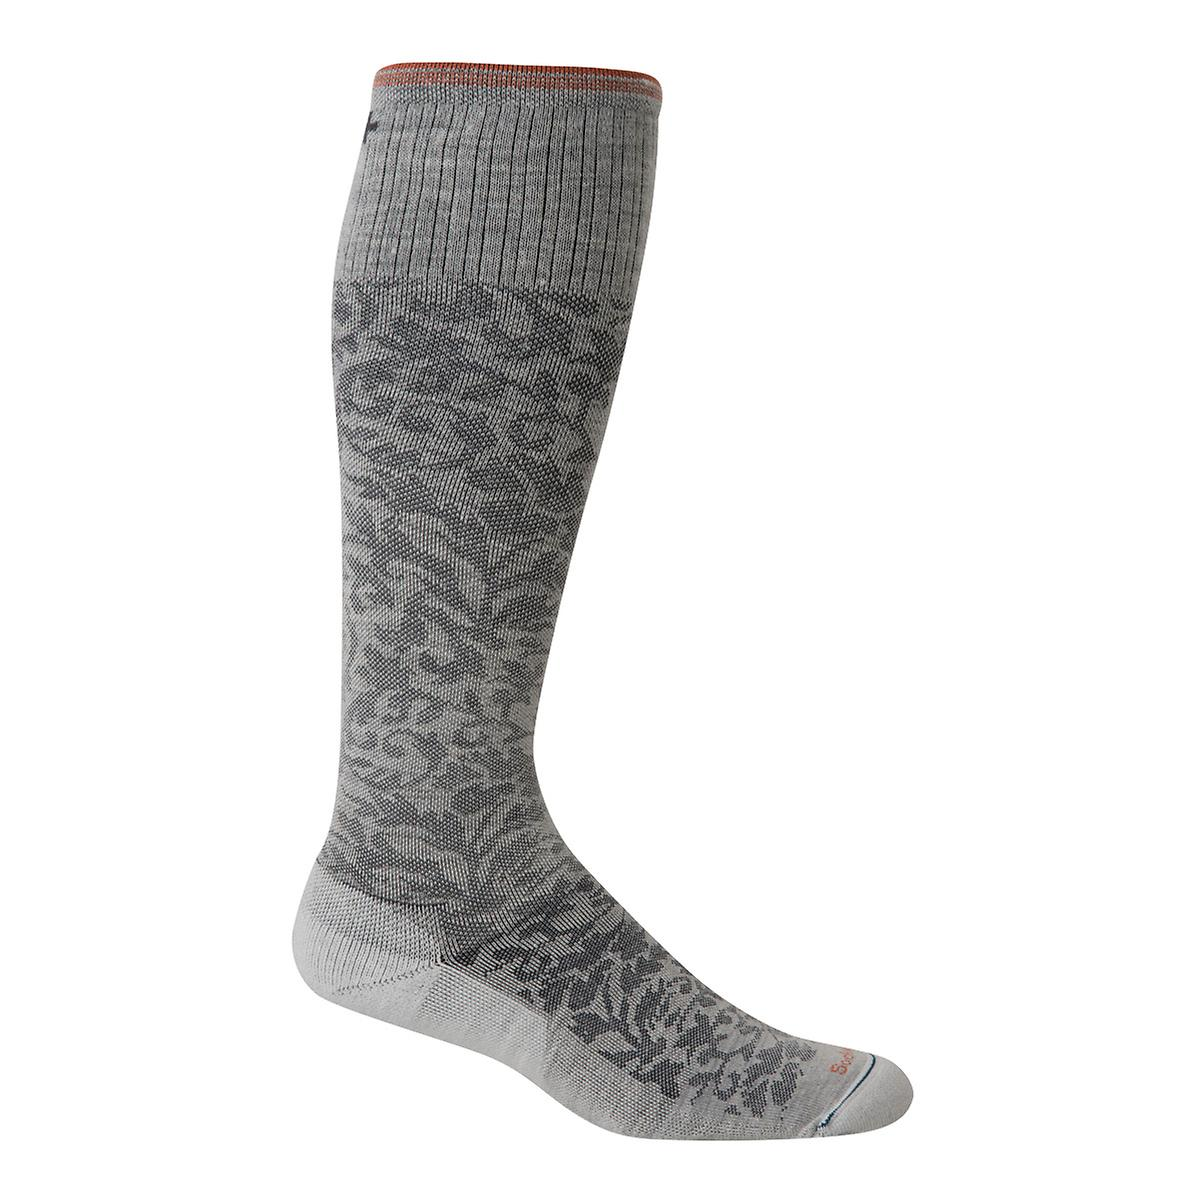 Grey Damask Compression Socks